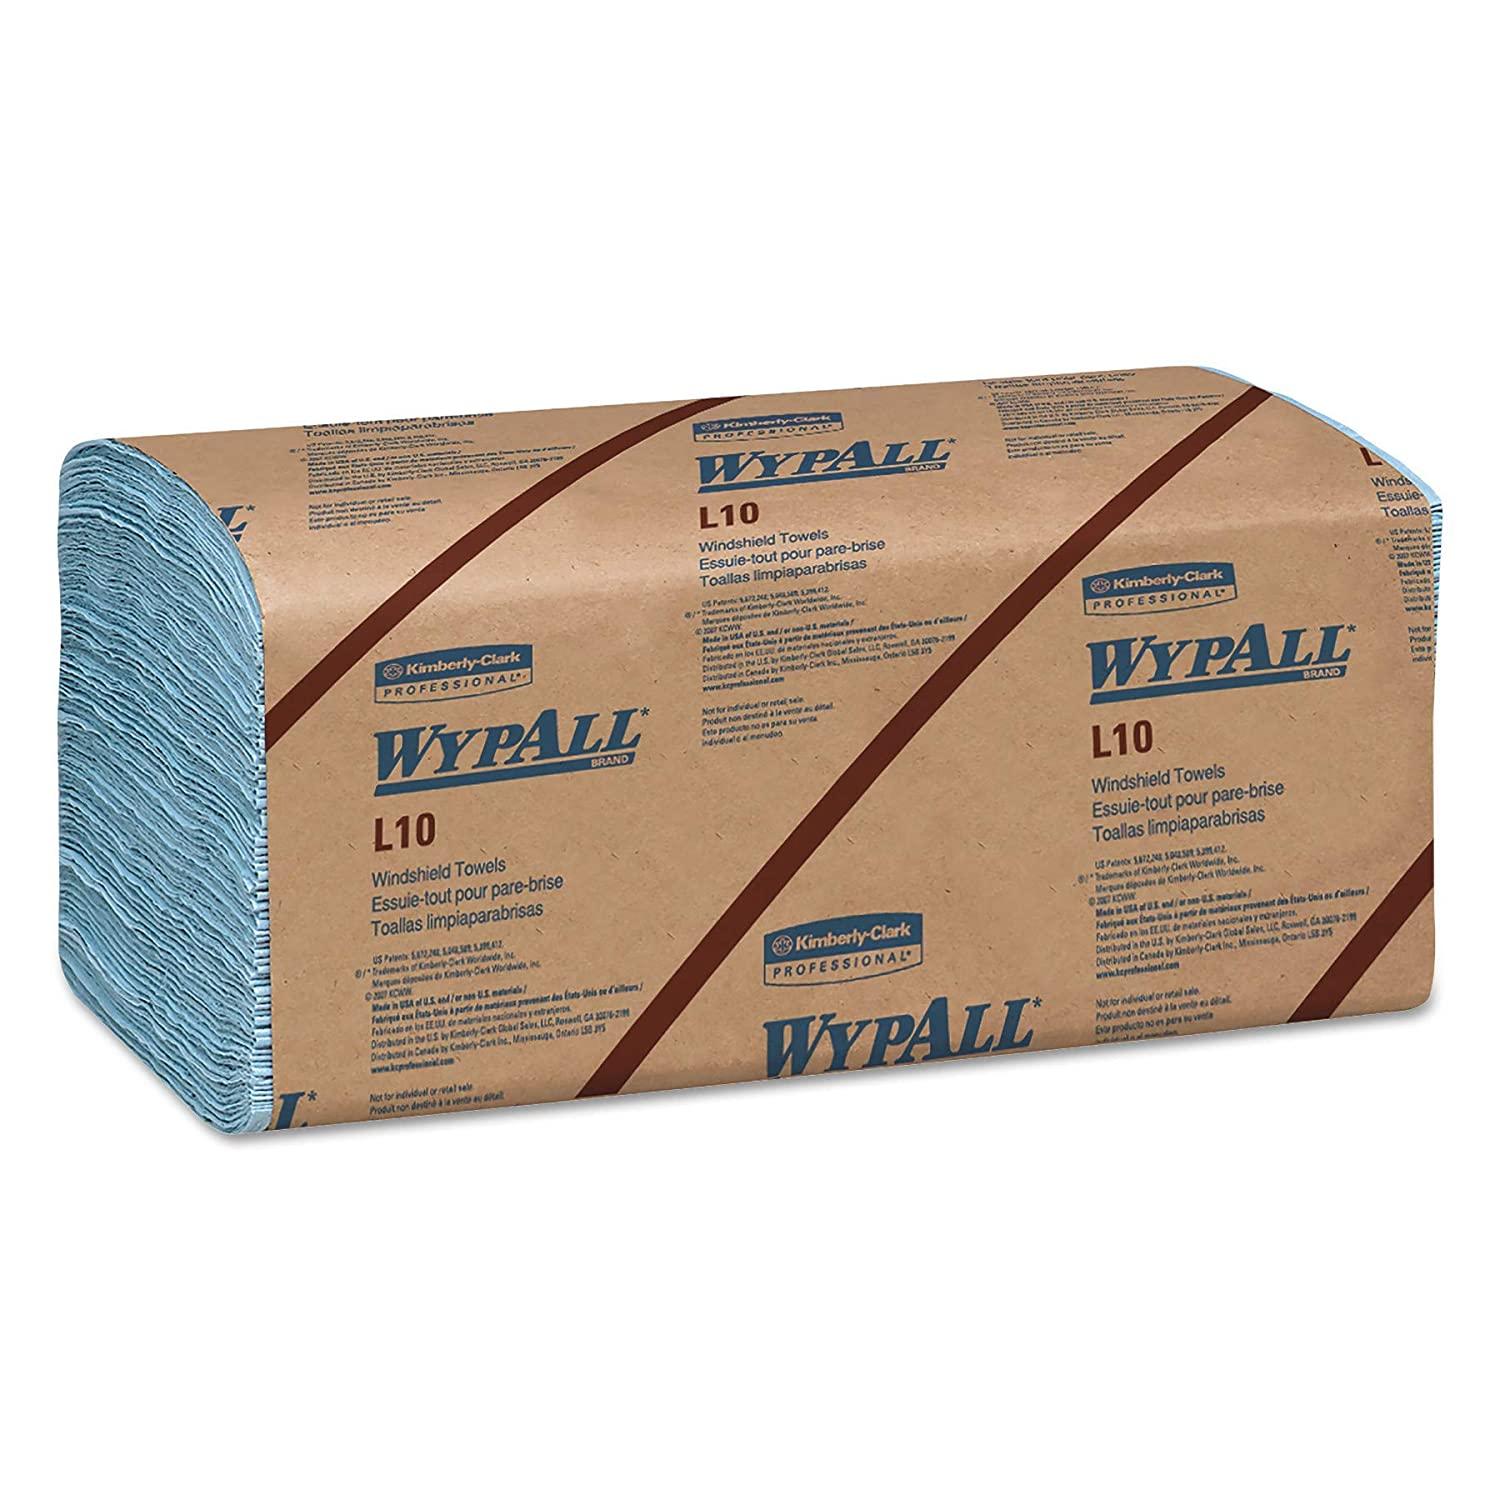 WypAll 05123 L10 Windshield Towels, 1-Ply, 9 1/10 x 10 1/4, 1-Ply ...